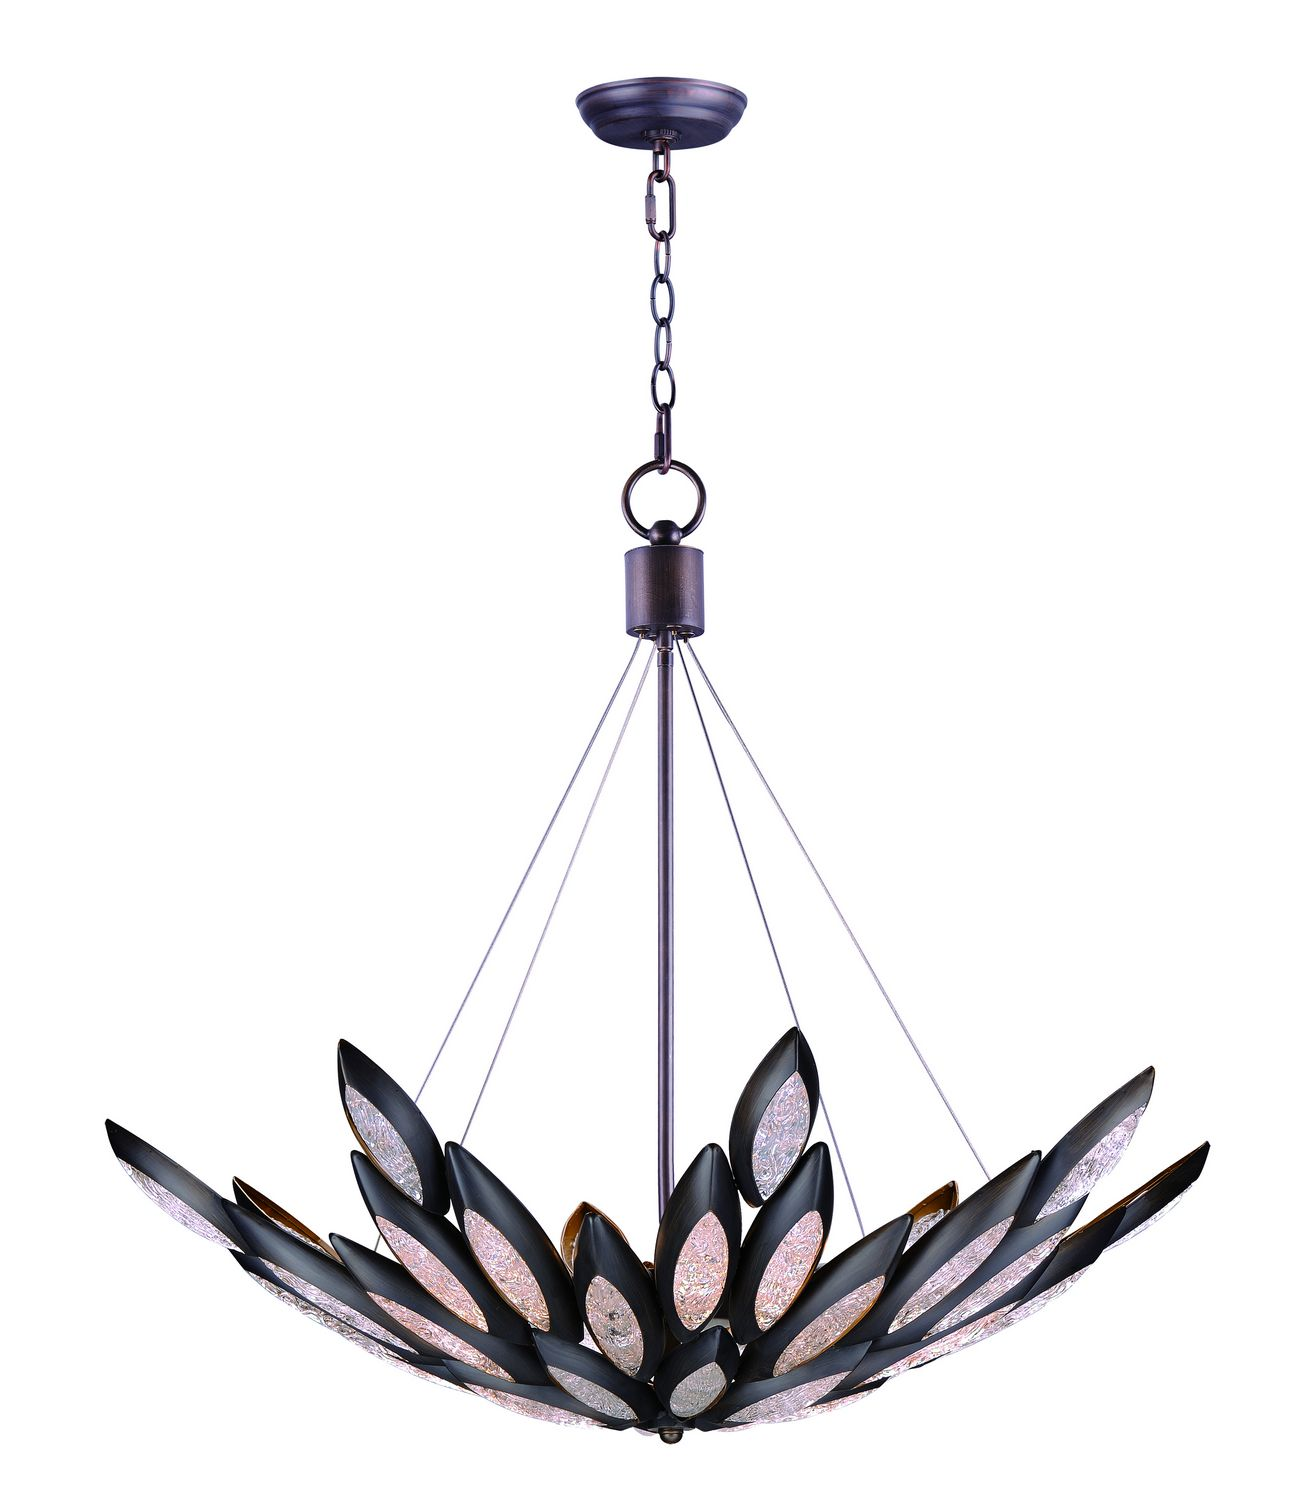 7dcda2473a46 Formed metal leaves finished in Burnished Bronze with insets of clear Ice  glass shimmer when illuminated by powerful Xenon lamps.